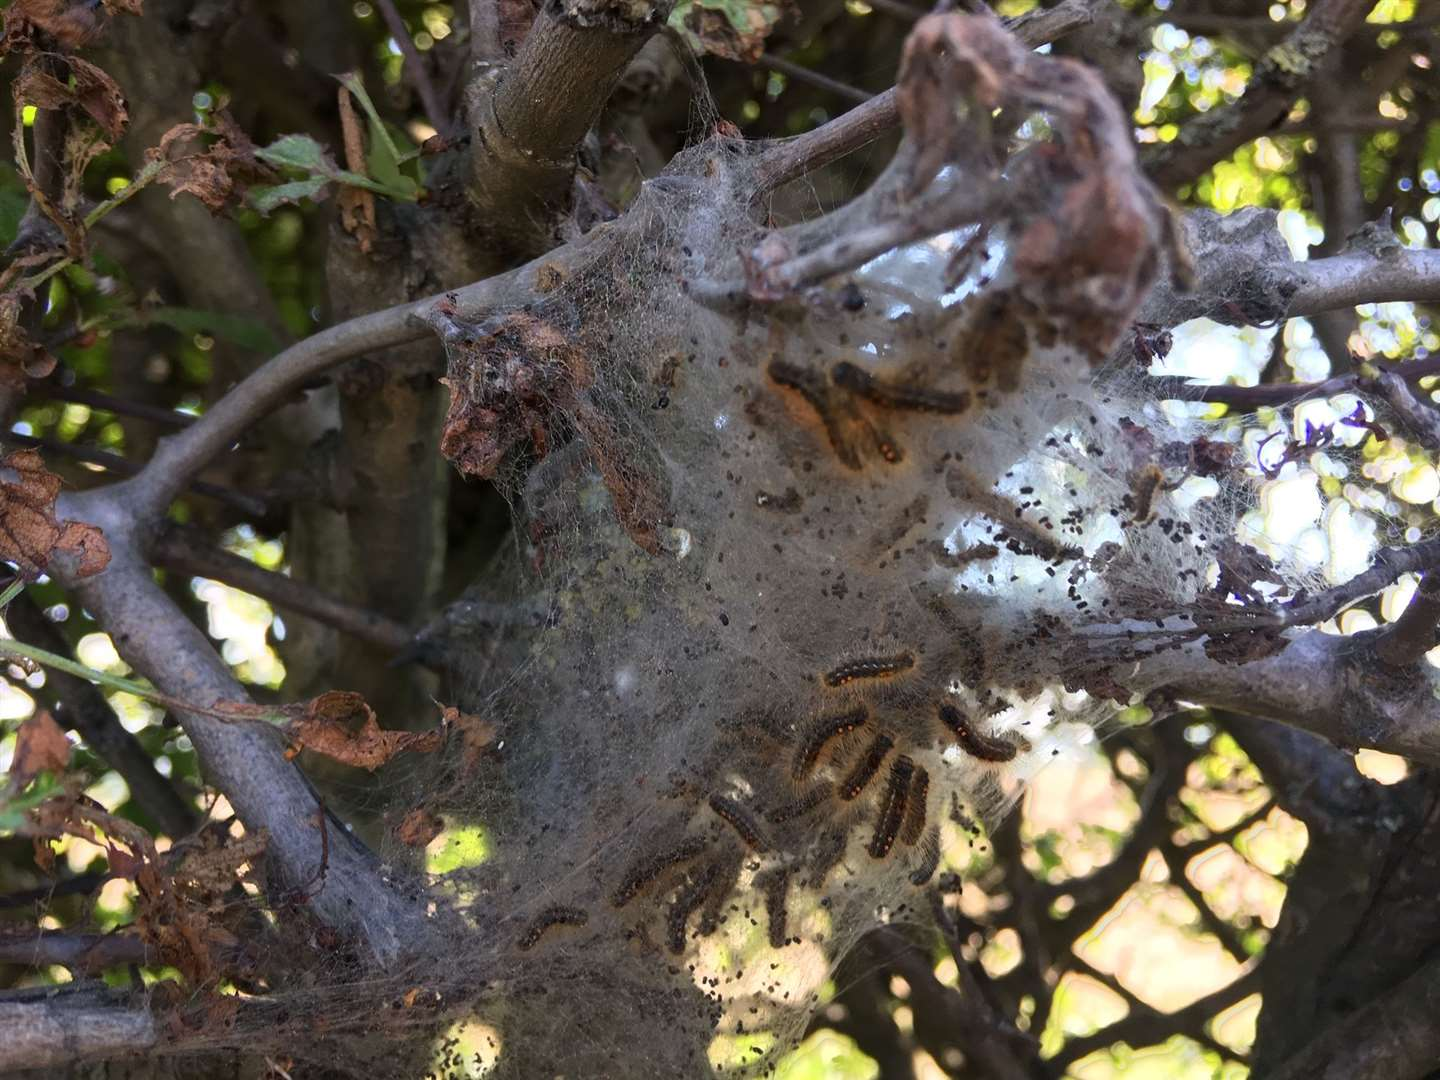 The toxic caterpillars are often in webs